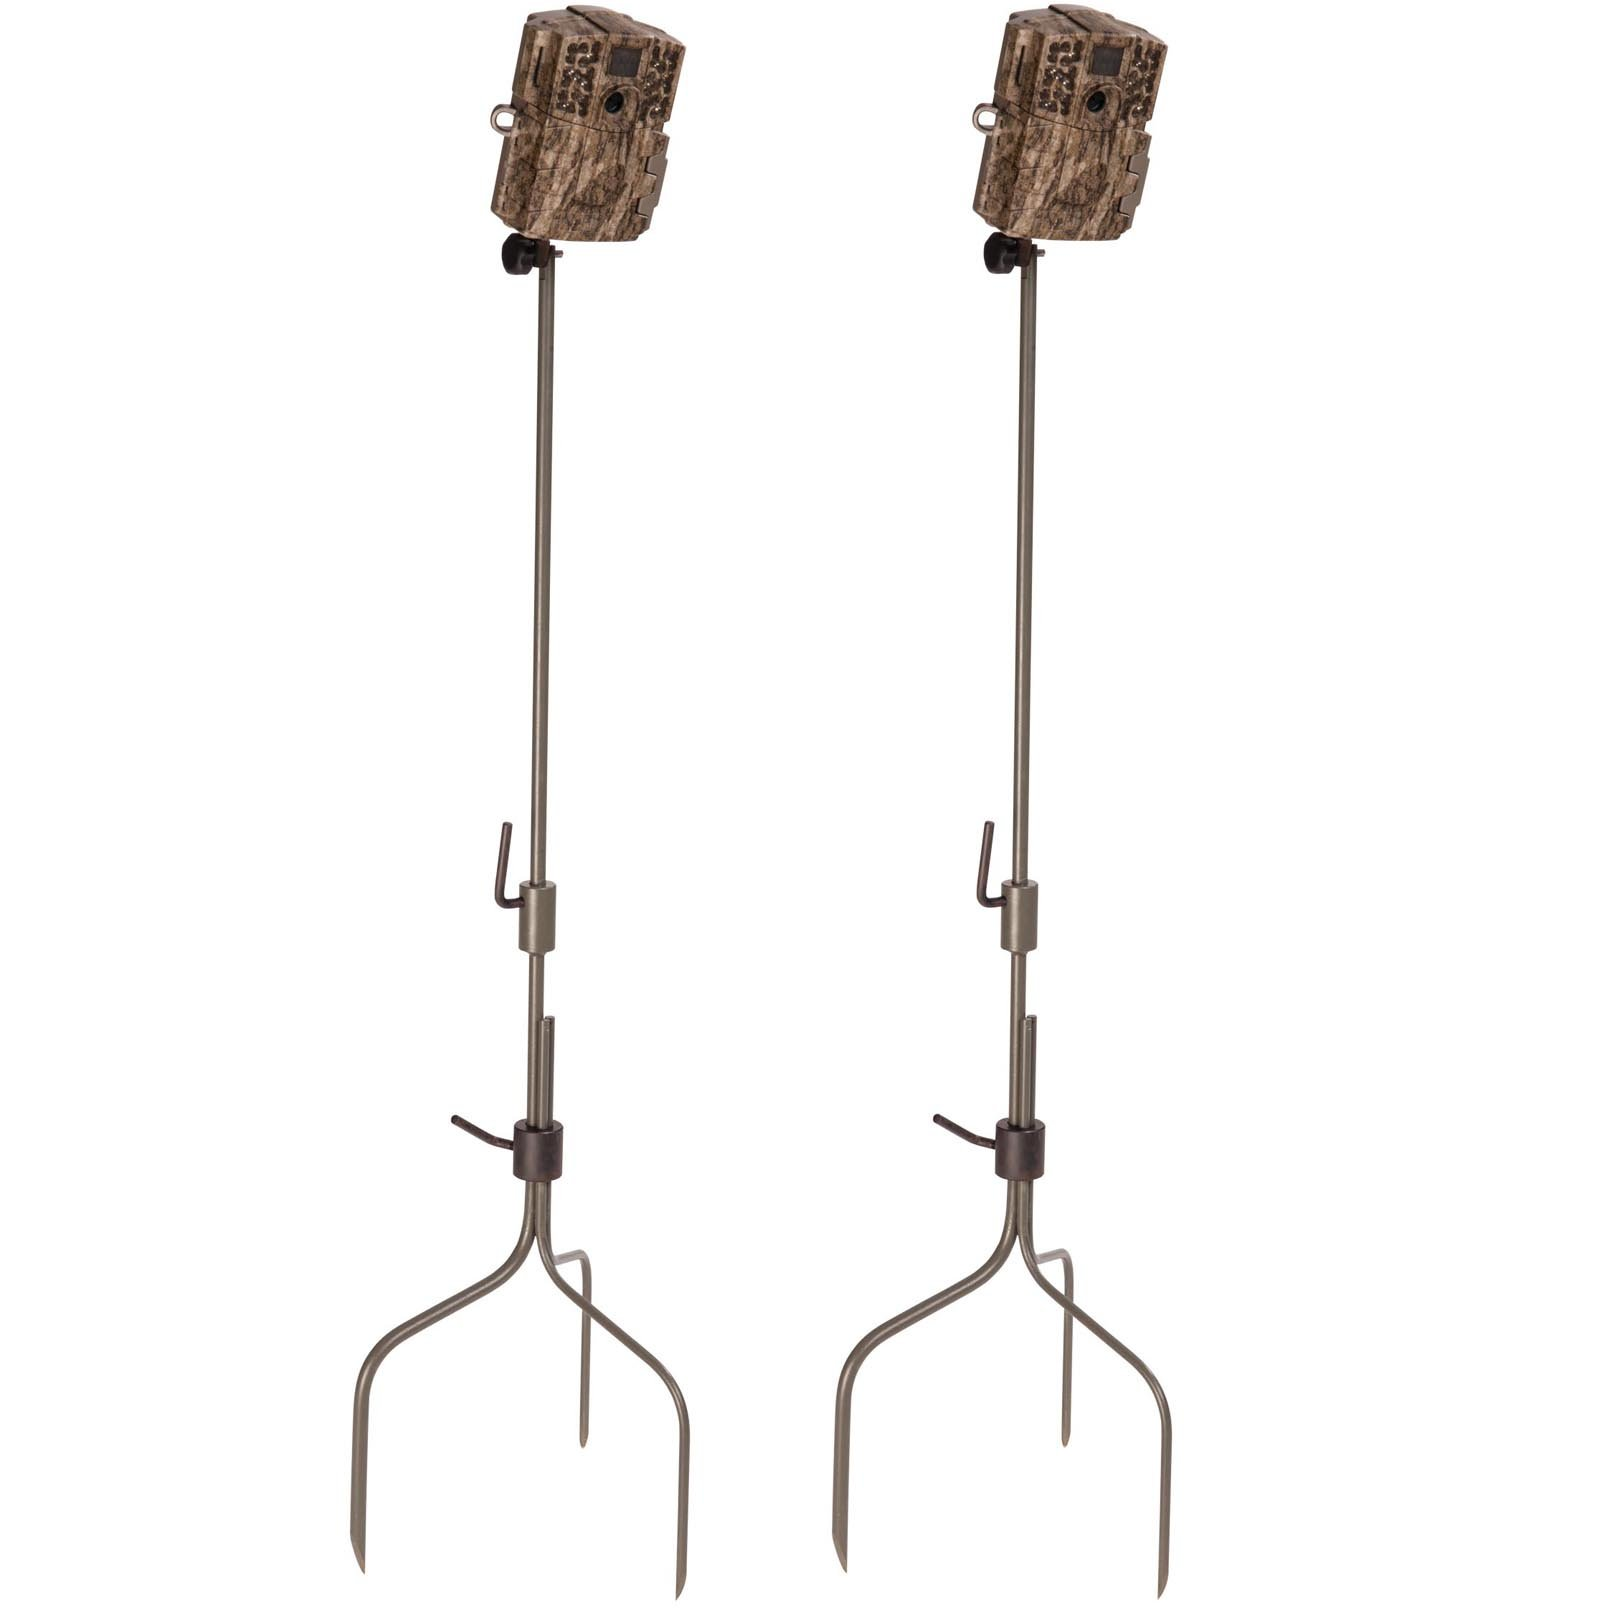 (2) Moultrie Universal Infrared Game Hunting Camera Steel Stakes | MCA-13051